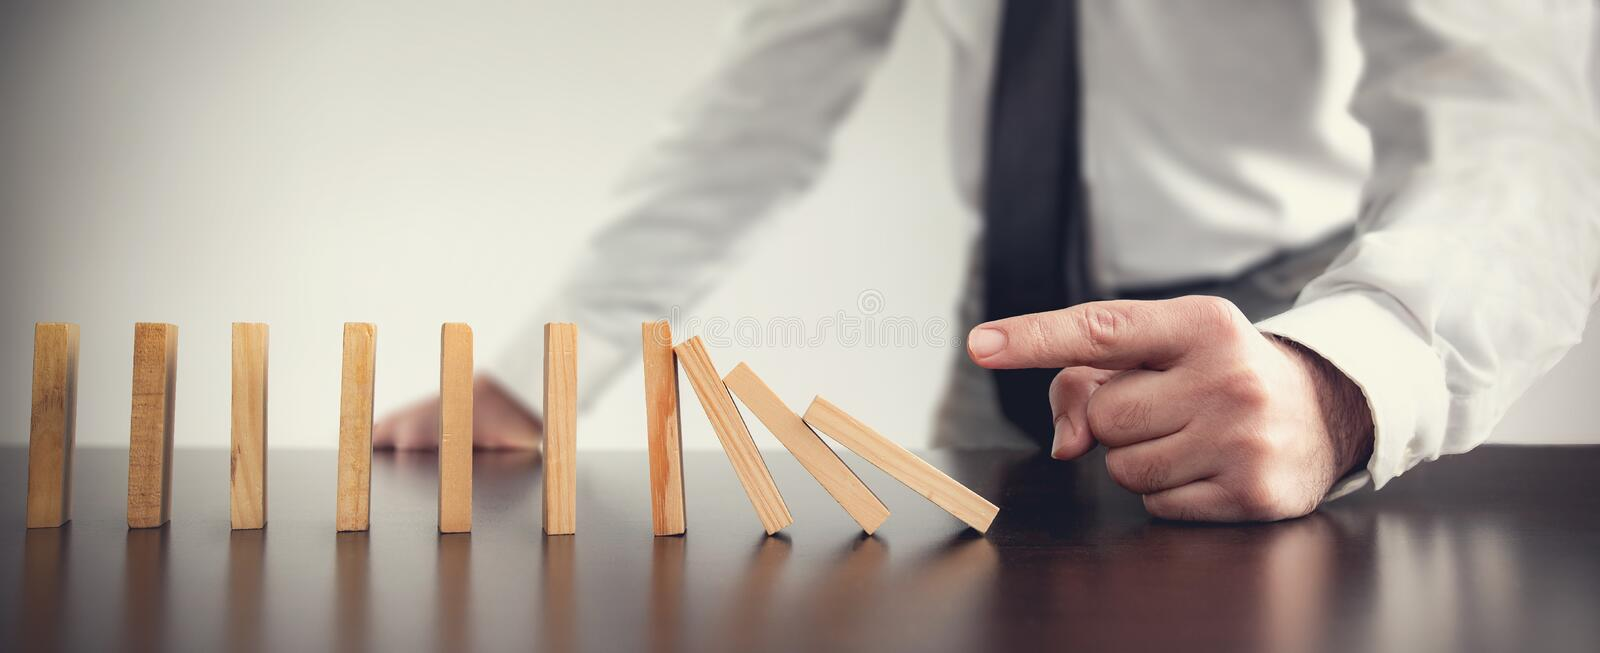 Chain Reaction In Business Concept, Businessman Just Starting Dominoes Toppling stock photography